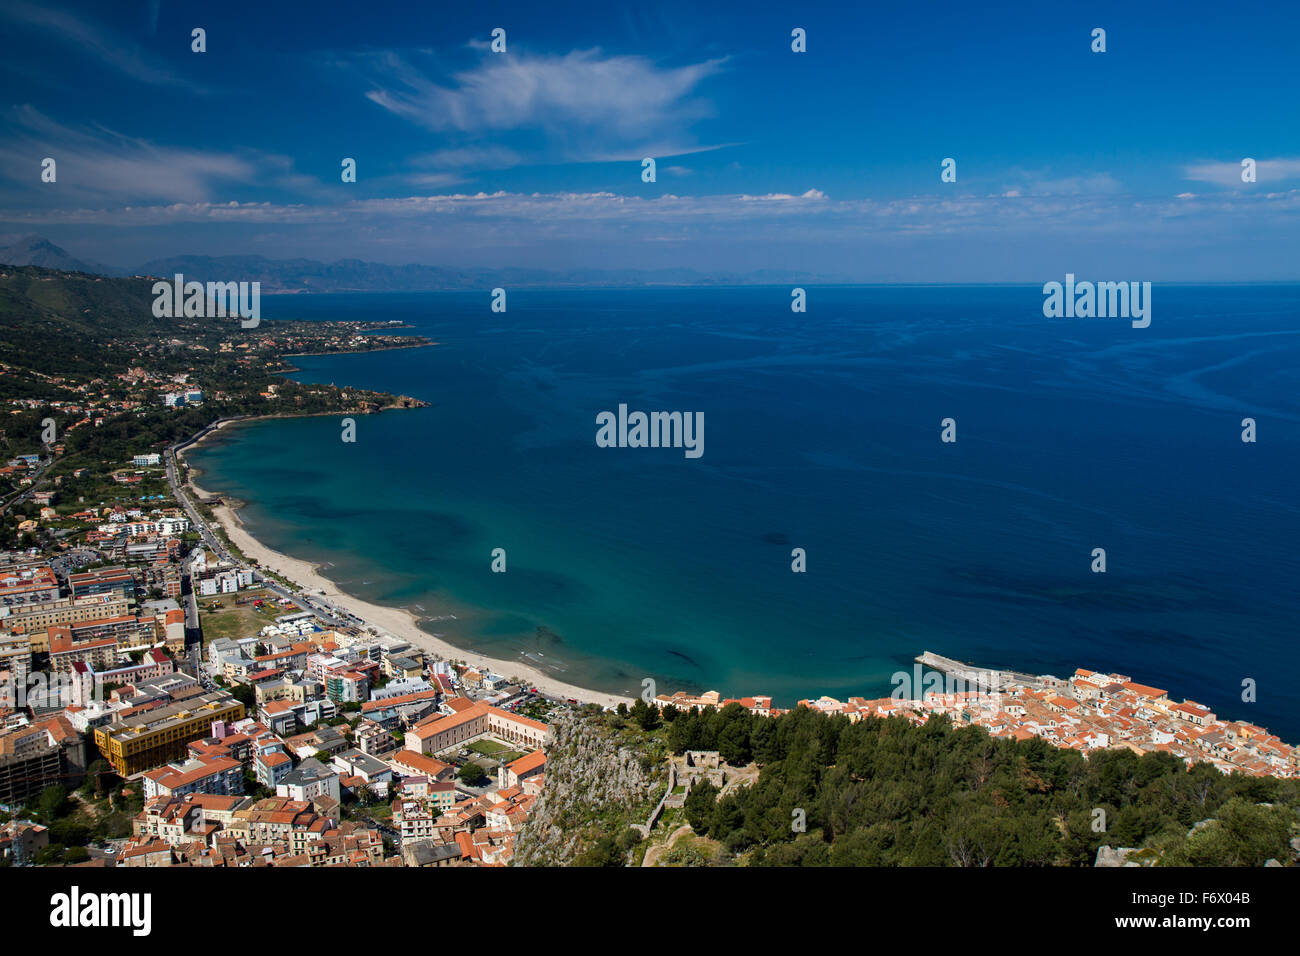 Panorama of the sicilian coastline near Cefalu, Sicily, Italy - Stock Image